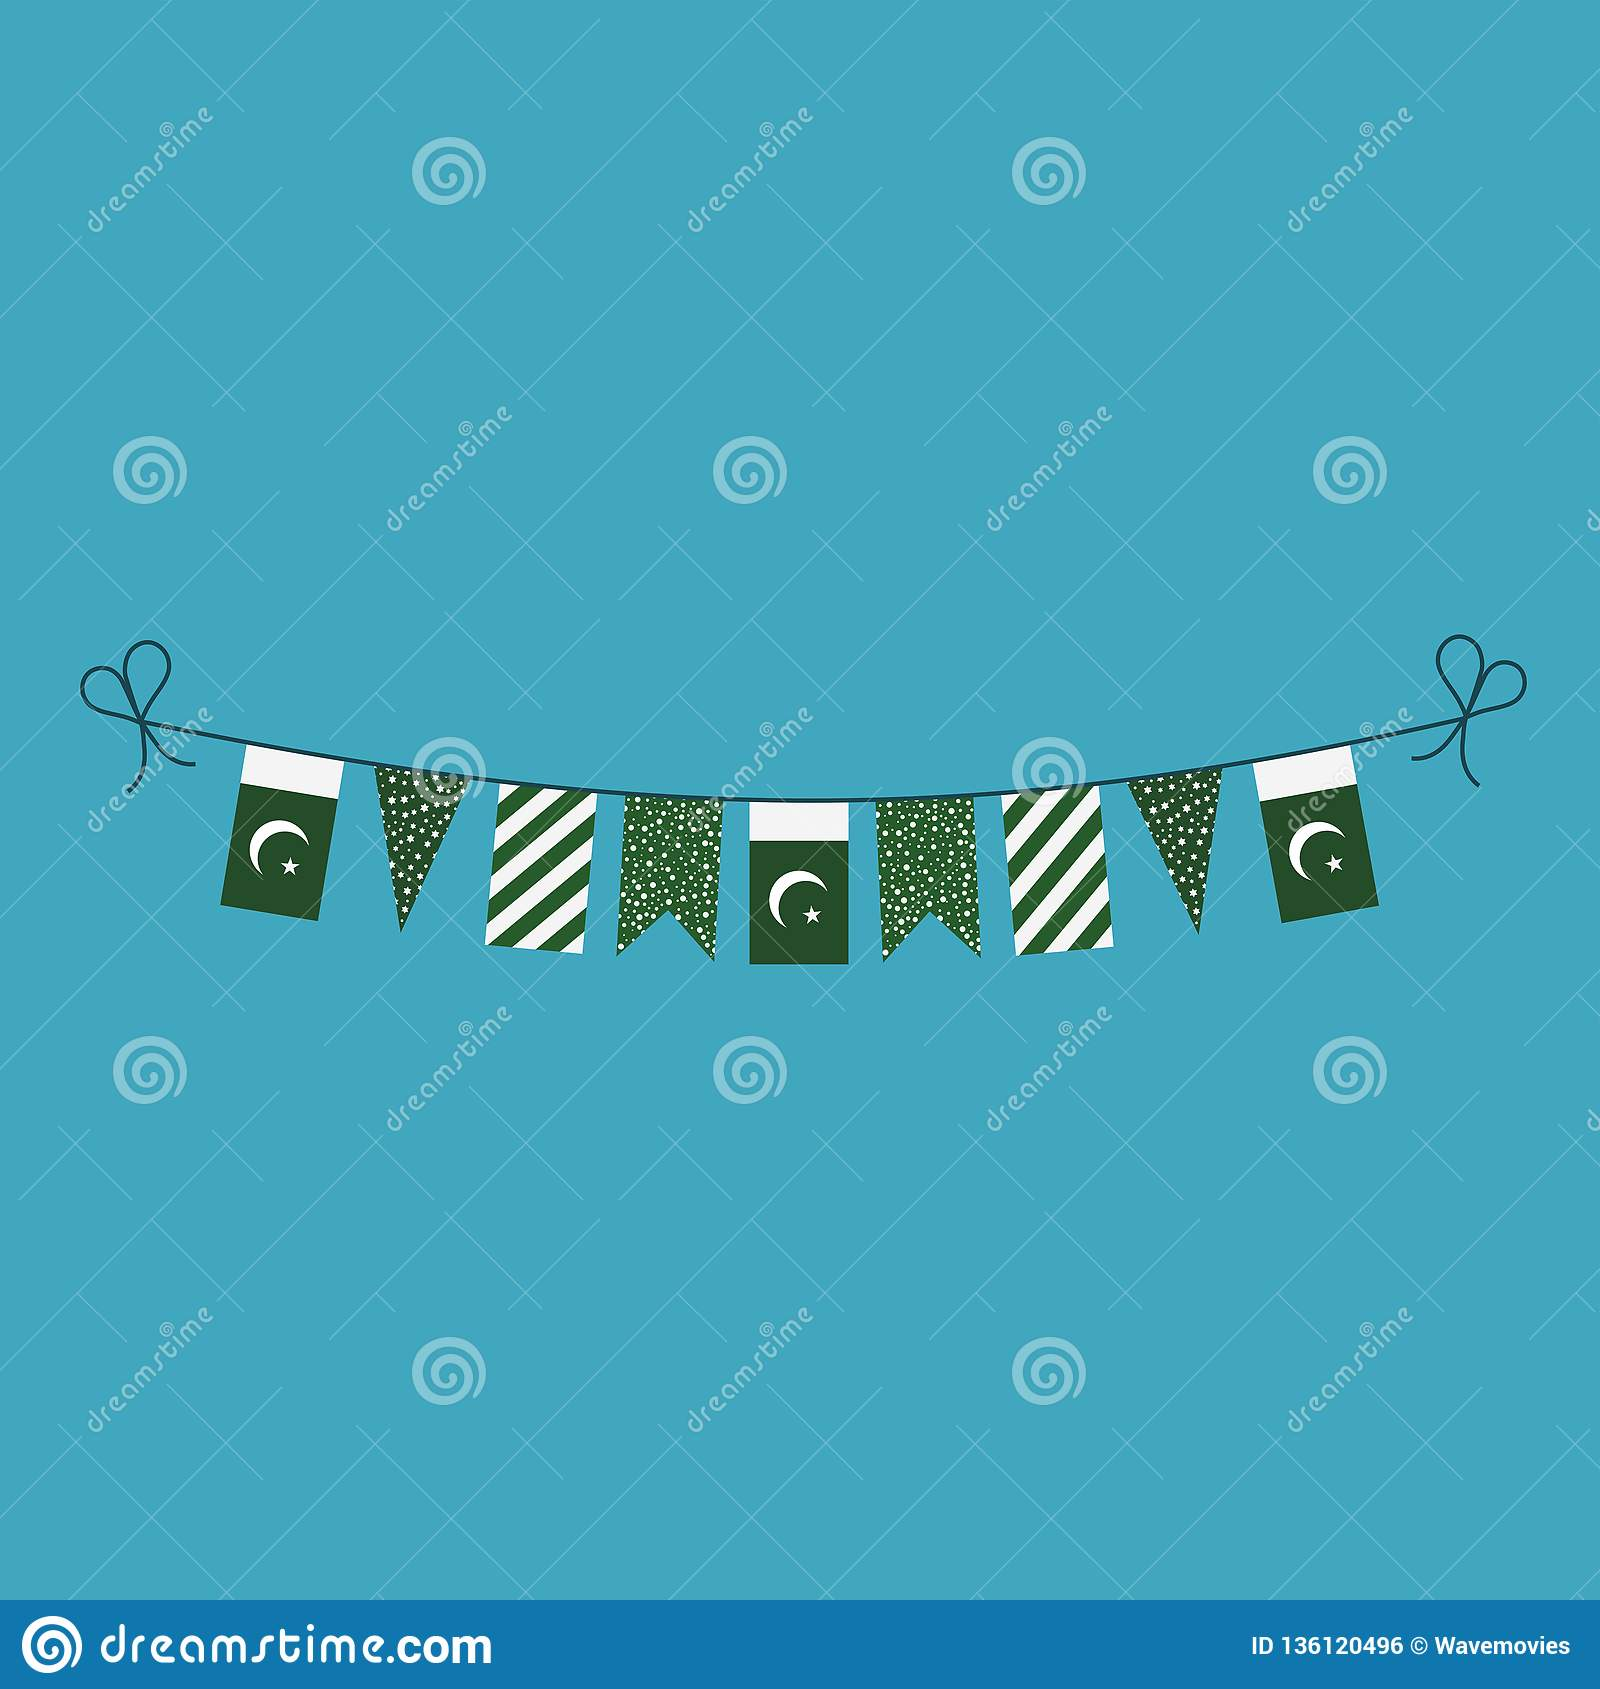 Decorations bunting flags for Pakistan national day holiday in flat design